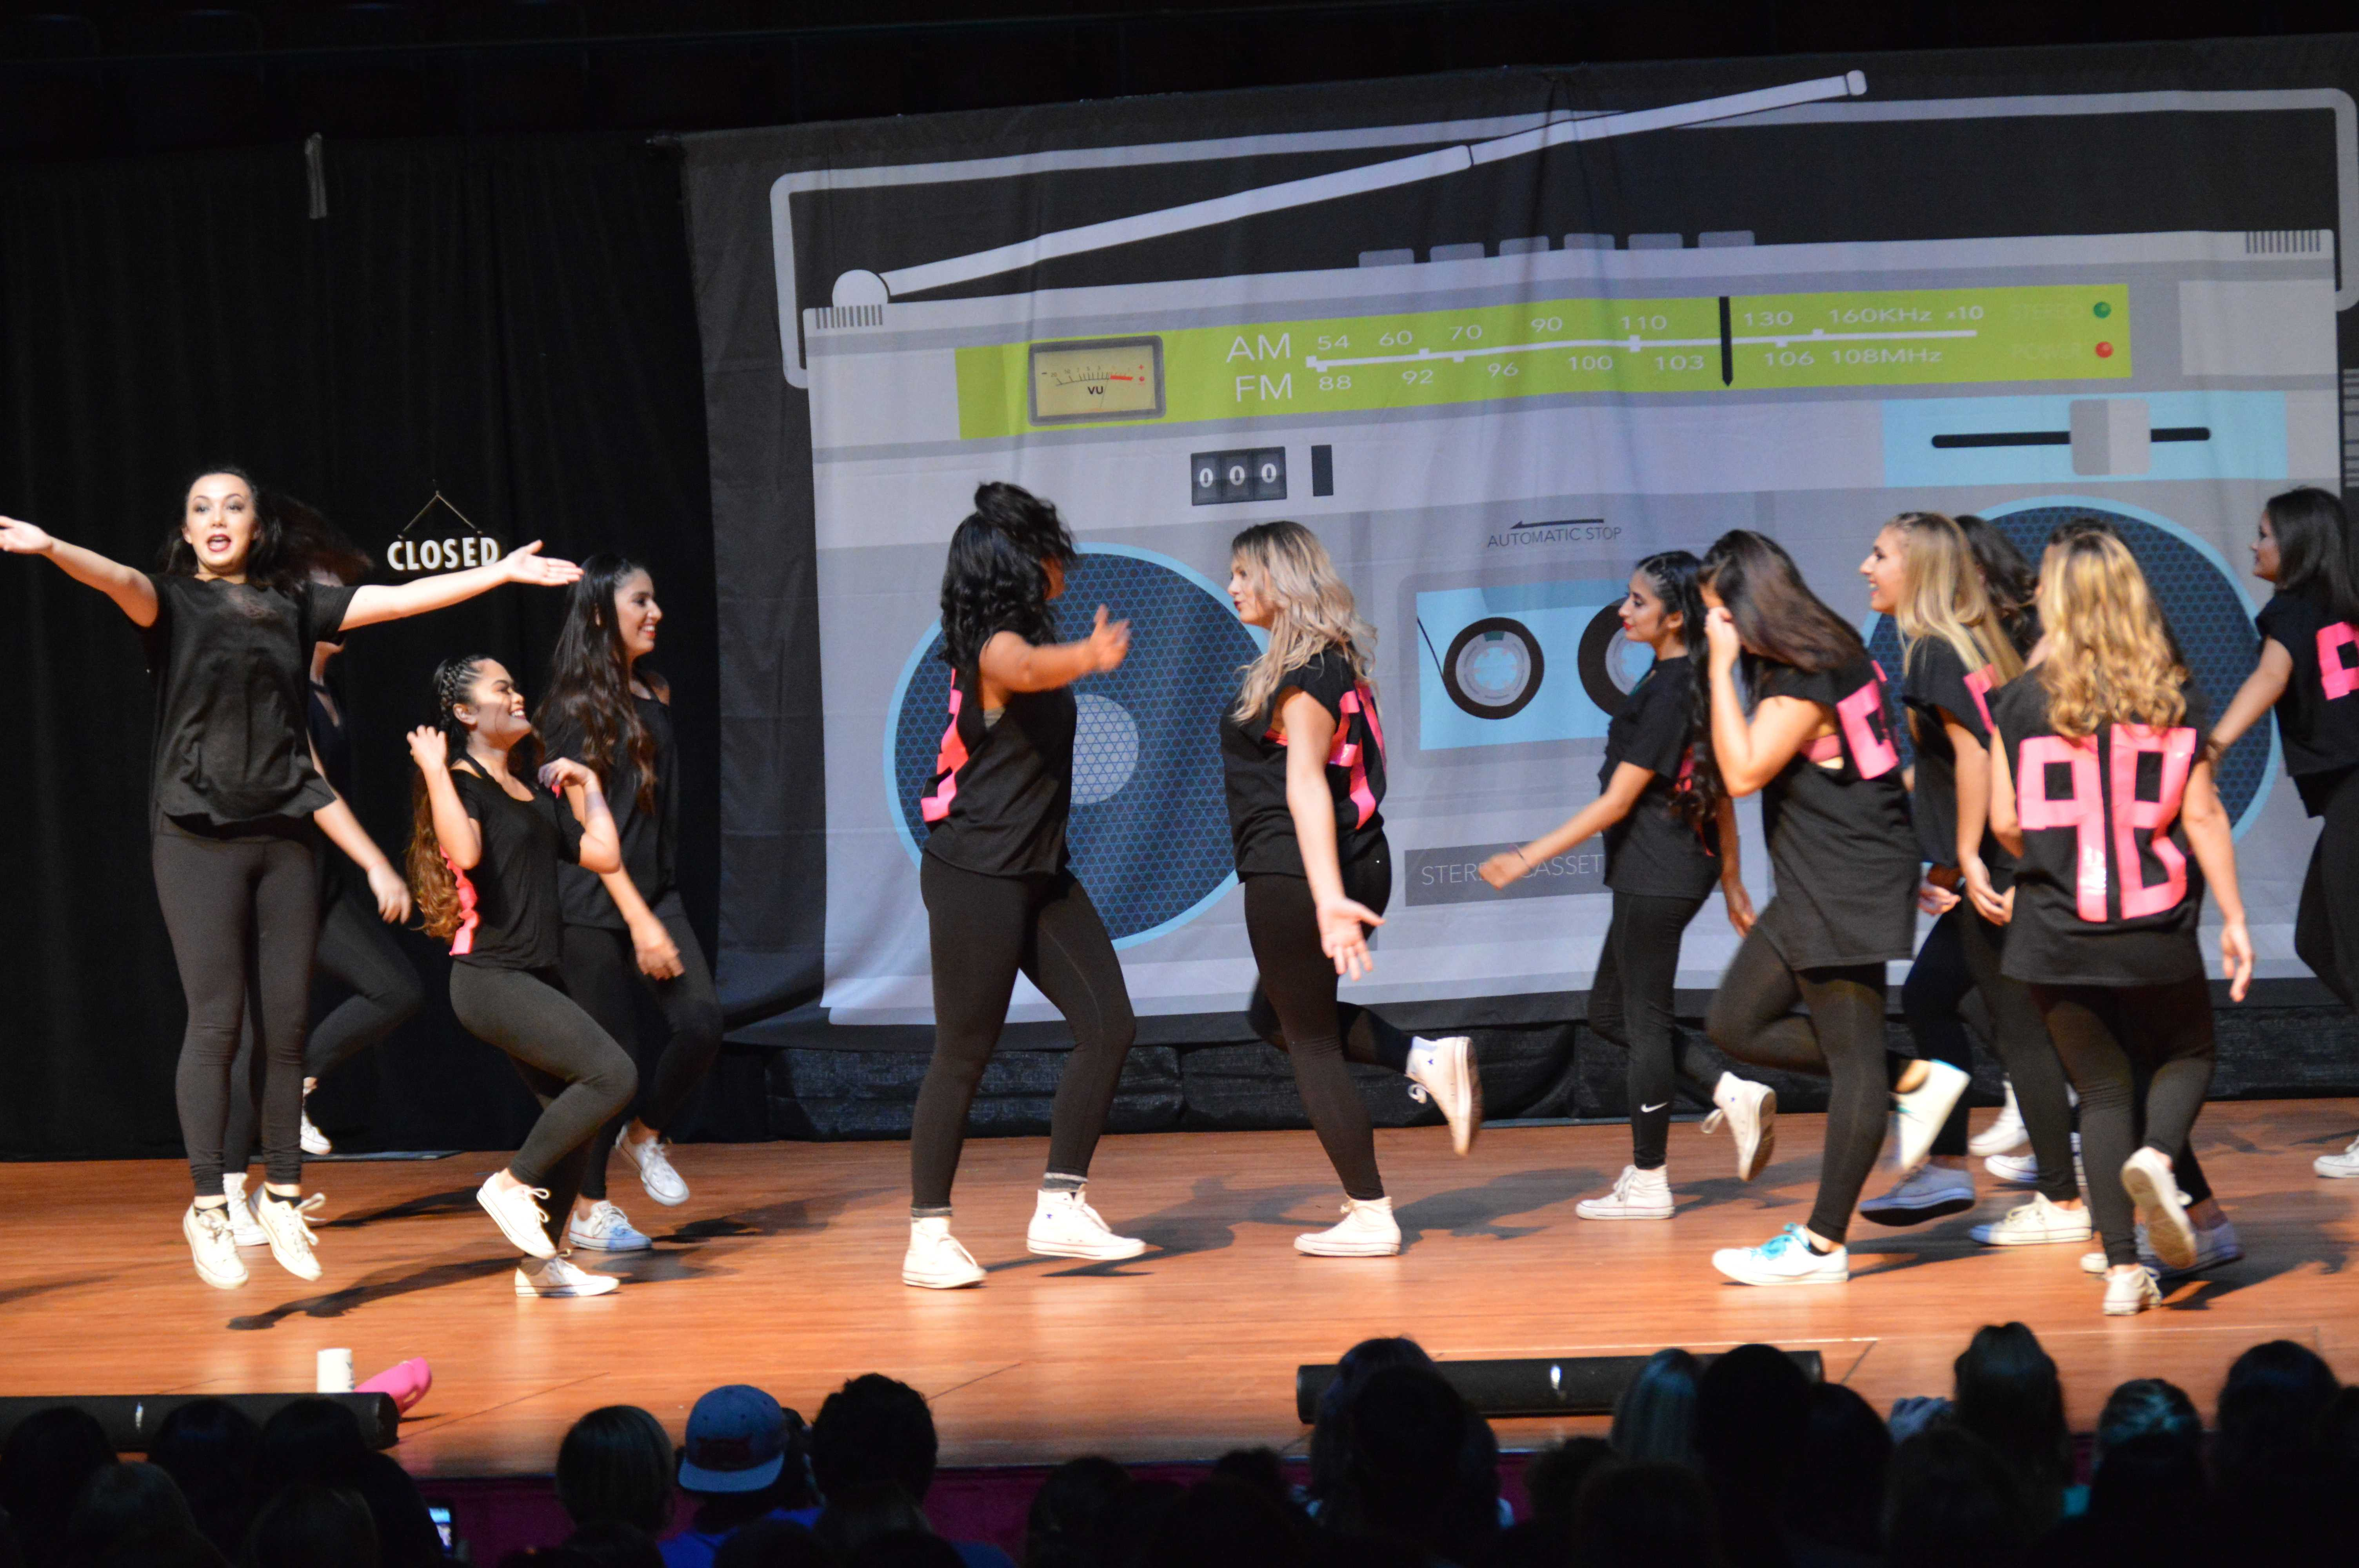 The Stage Dance Group outshine others